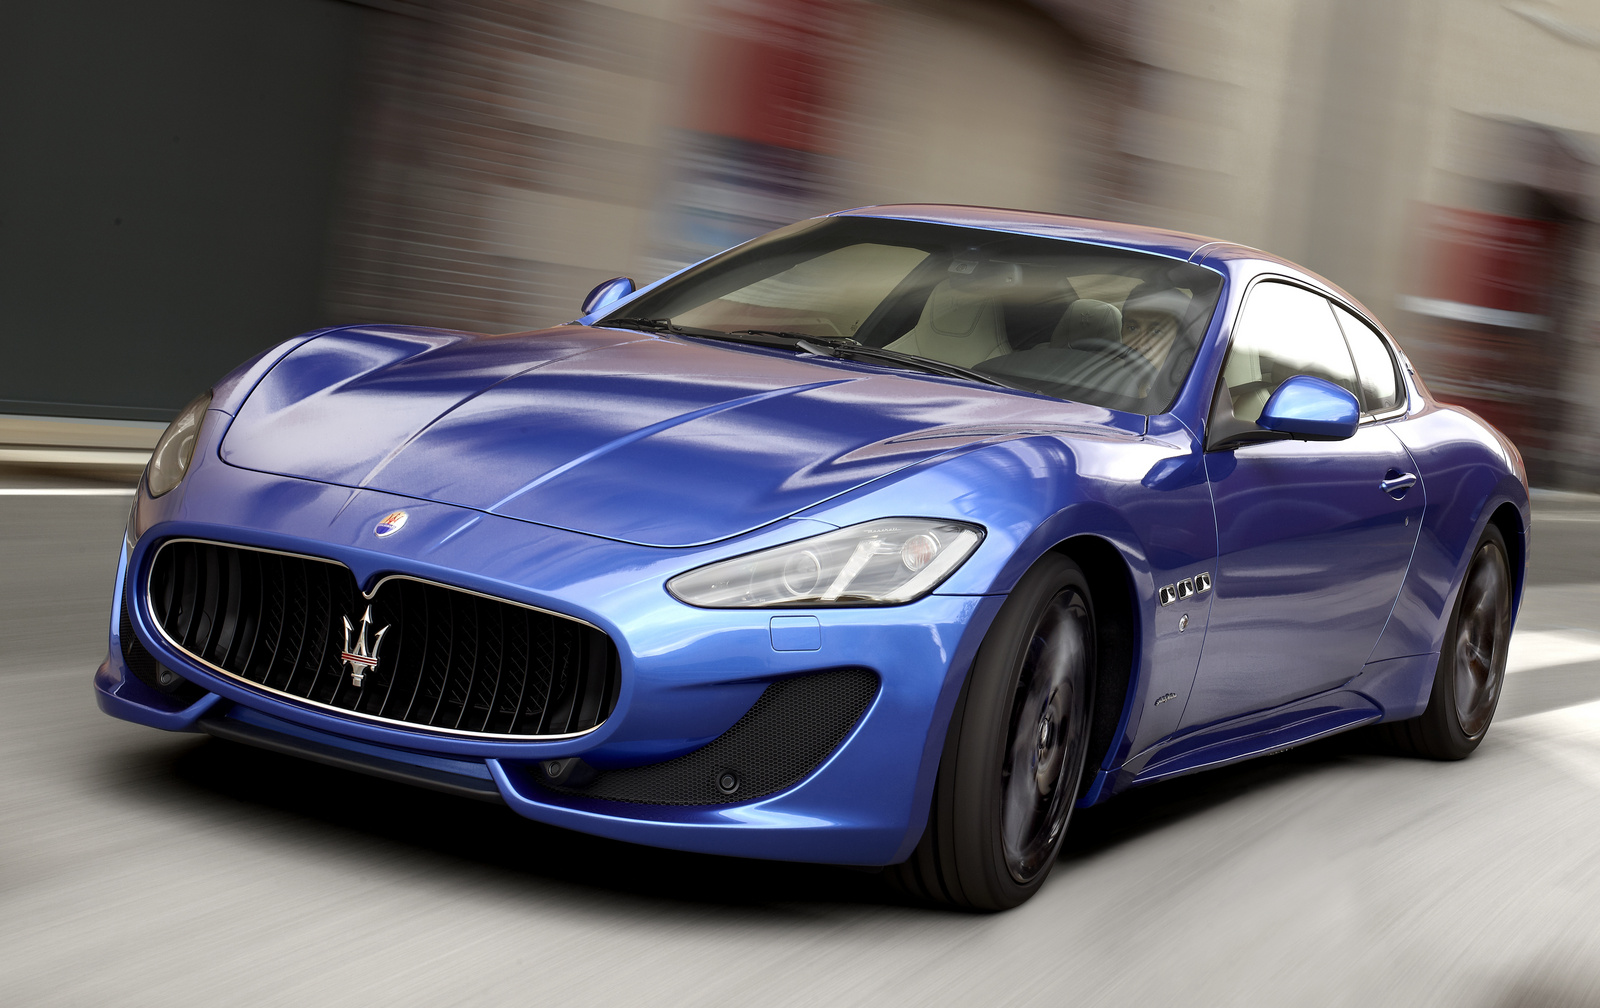 maserati granturismo 21 Wallpapers Widescreen Wallpaper 1600x1008